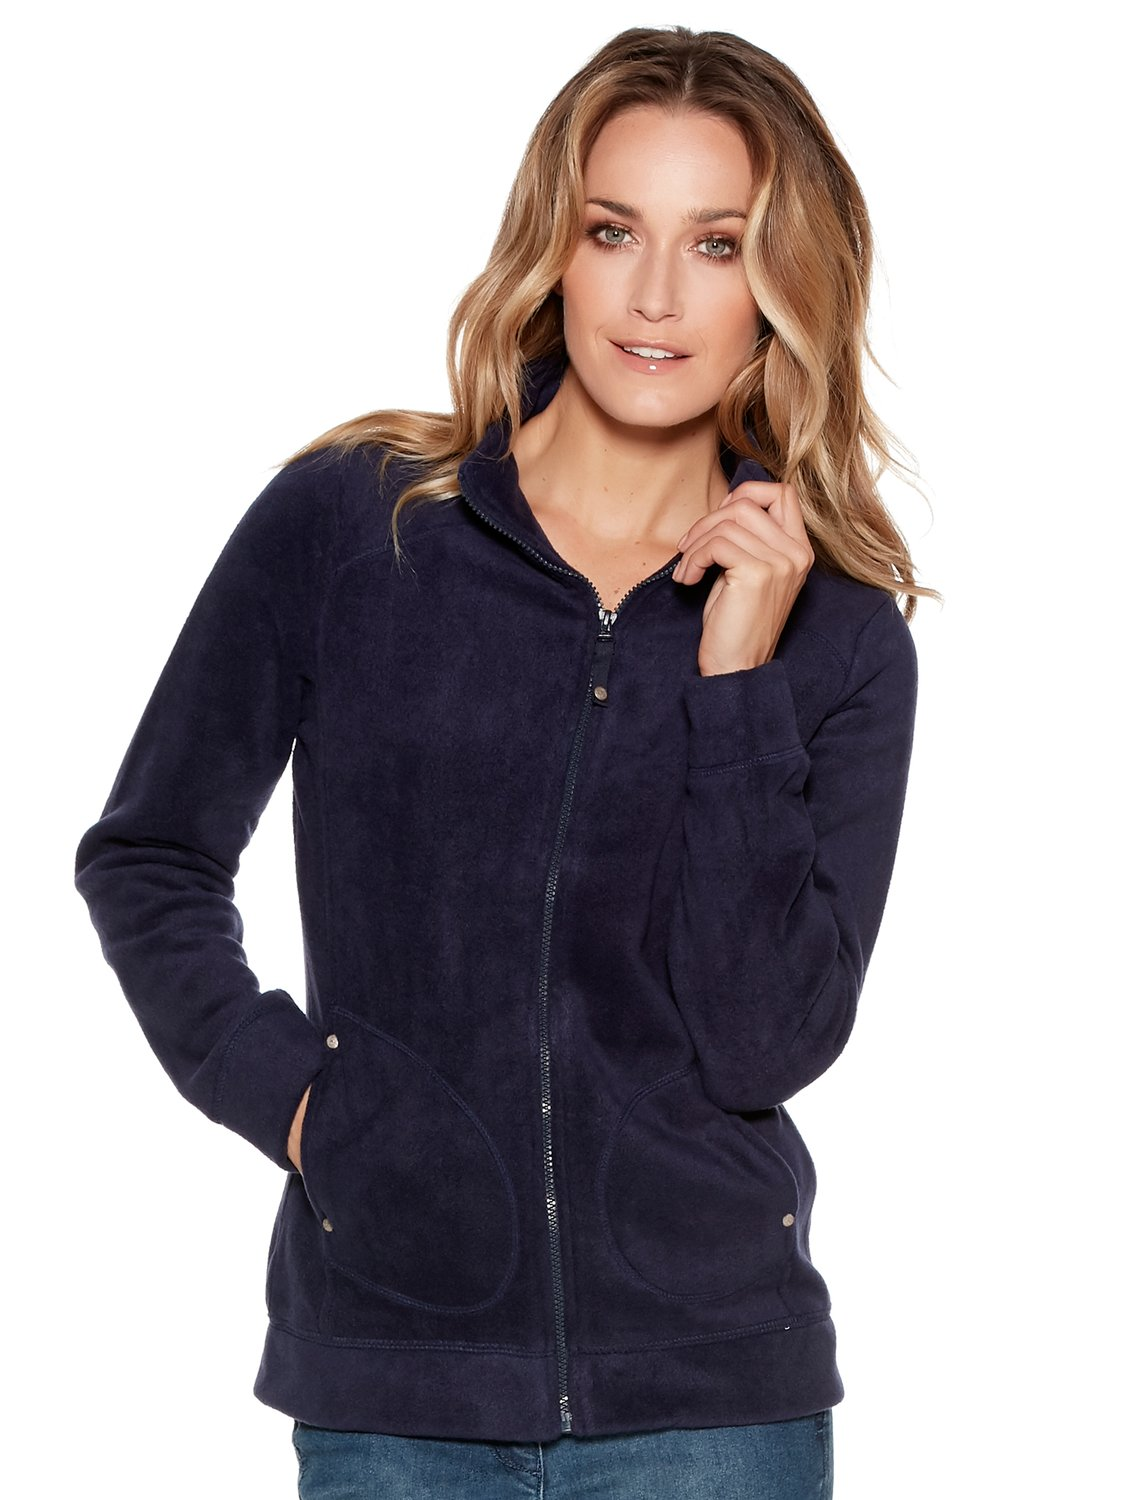 Women's Ladies Long Sleeve Funnel Neck Soft Fleece Zip Up Jacket With Pockets